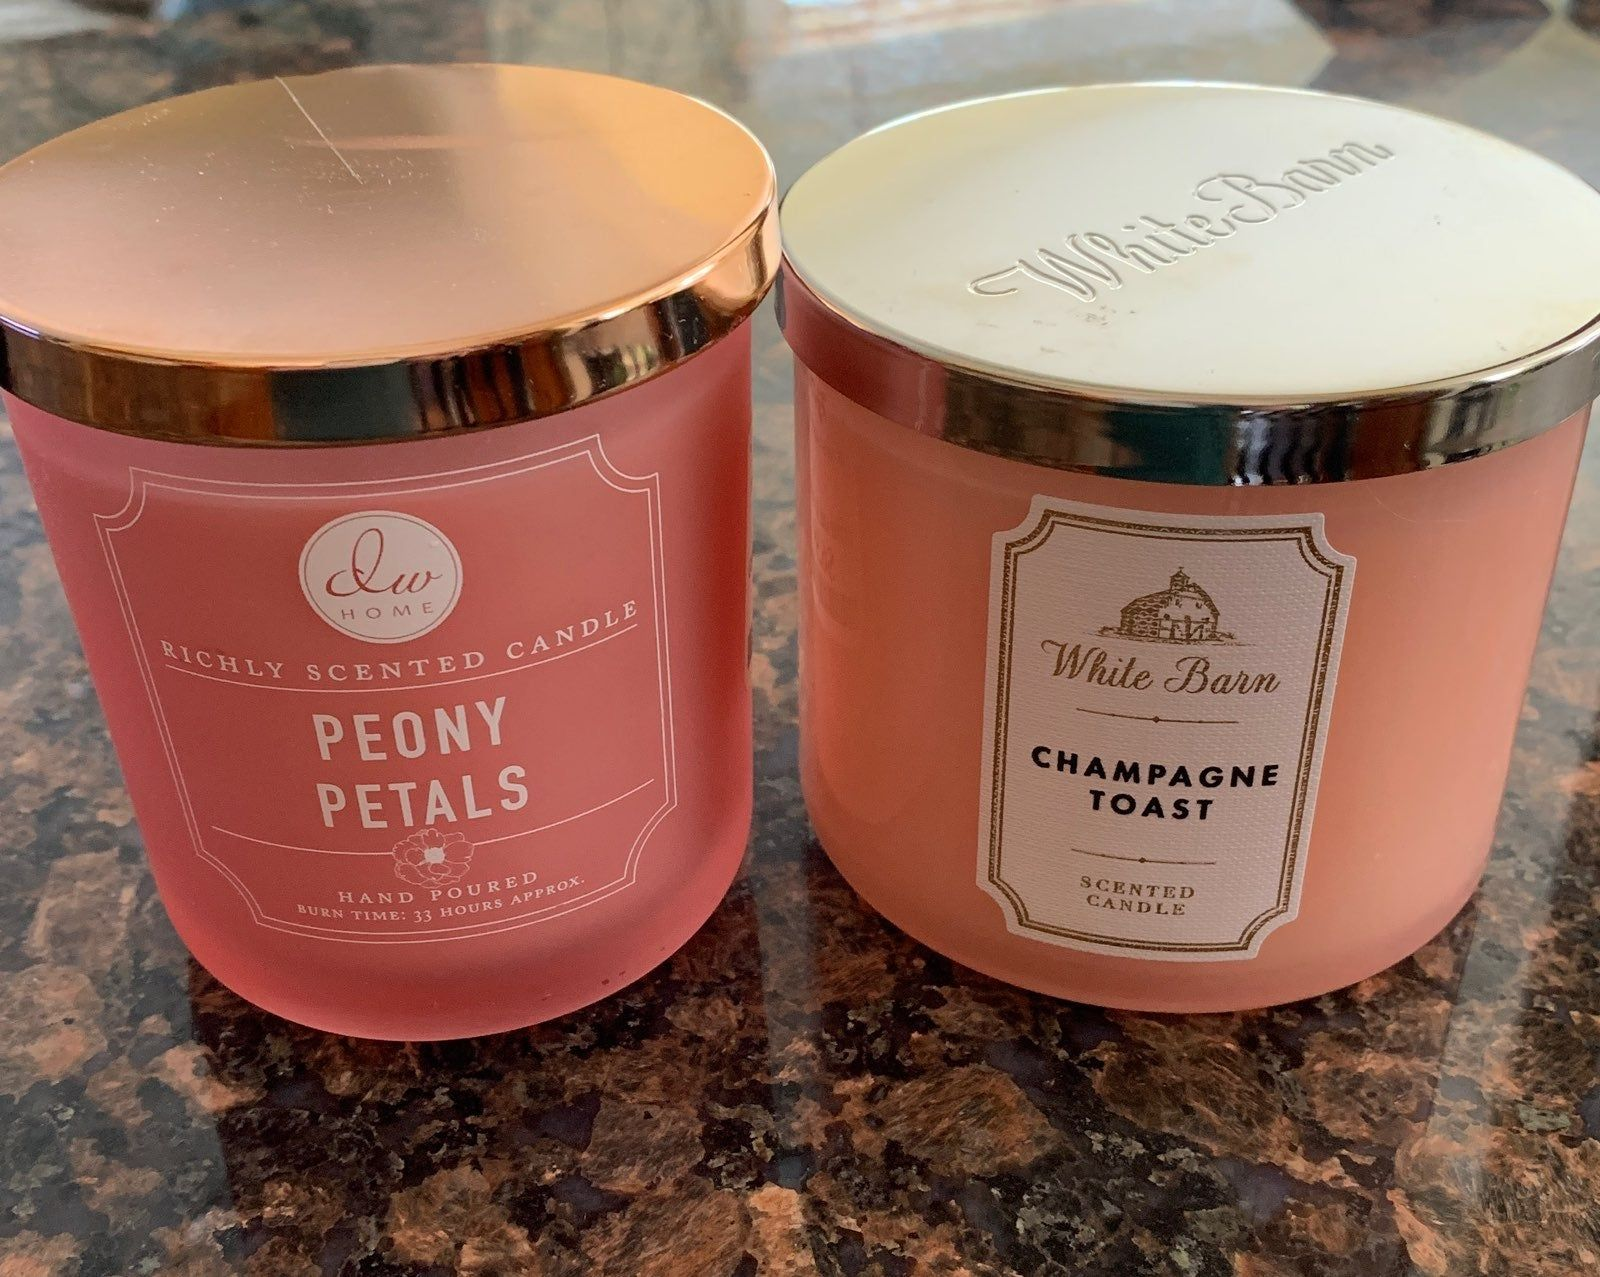 Brand New Never Burnt Candle Bundle Tj Maxx Peony Petals 9 21 Oz Candle Originally 6 99 White Barn Champag Bath Body Works Candles Champagne Toast Candles